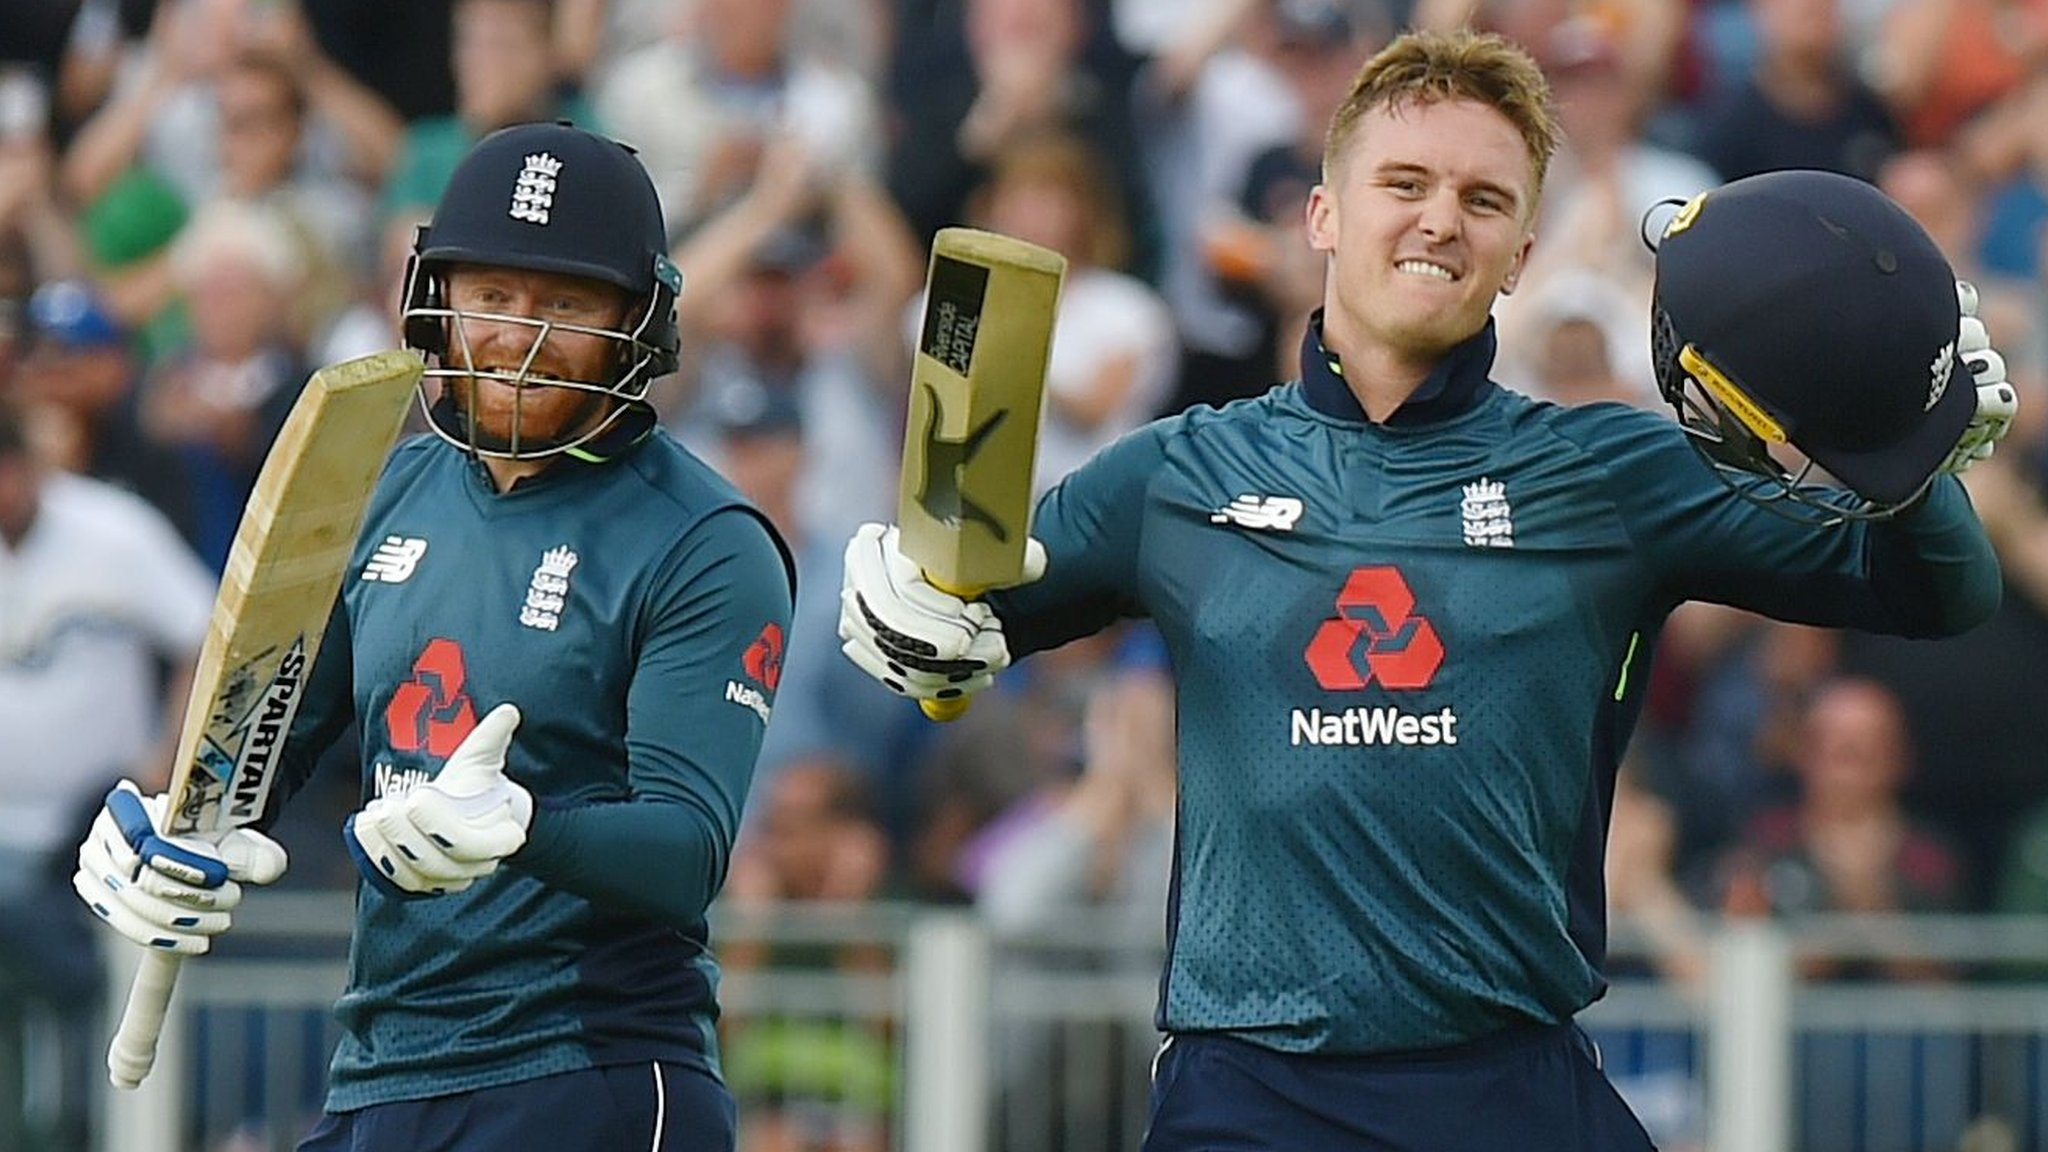 England v Australia: Jason Roy stars as hosts close in on ODI whitewash